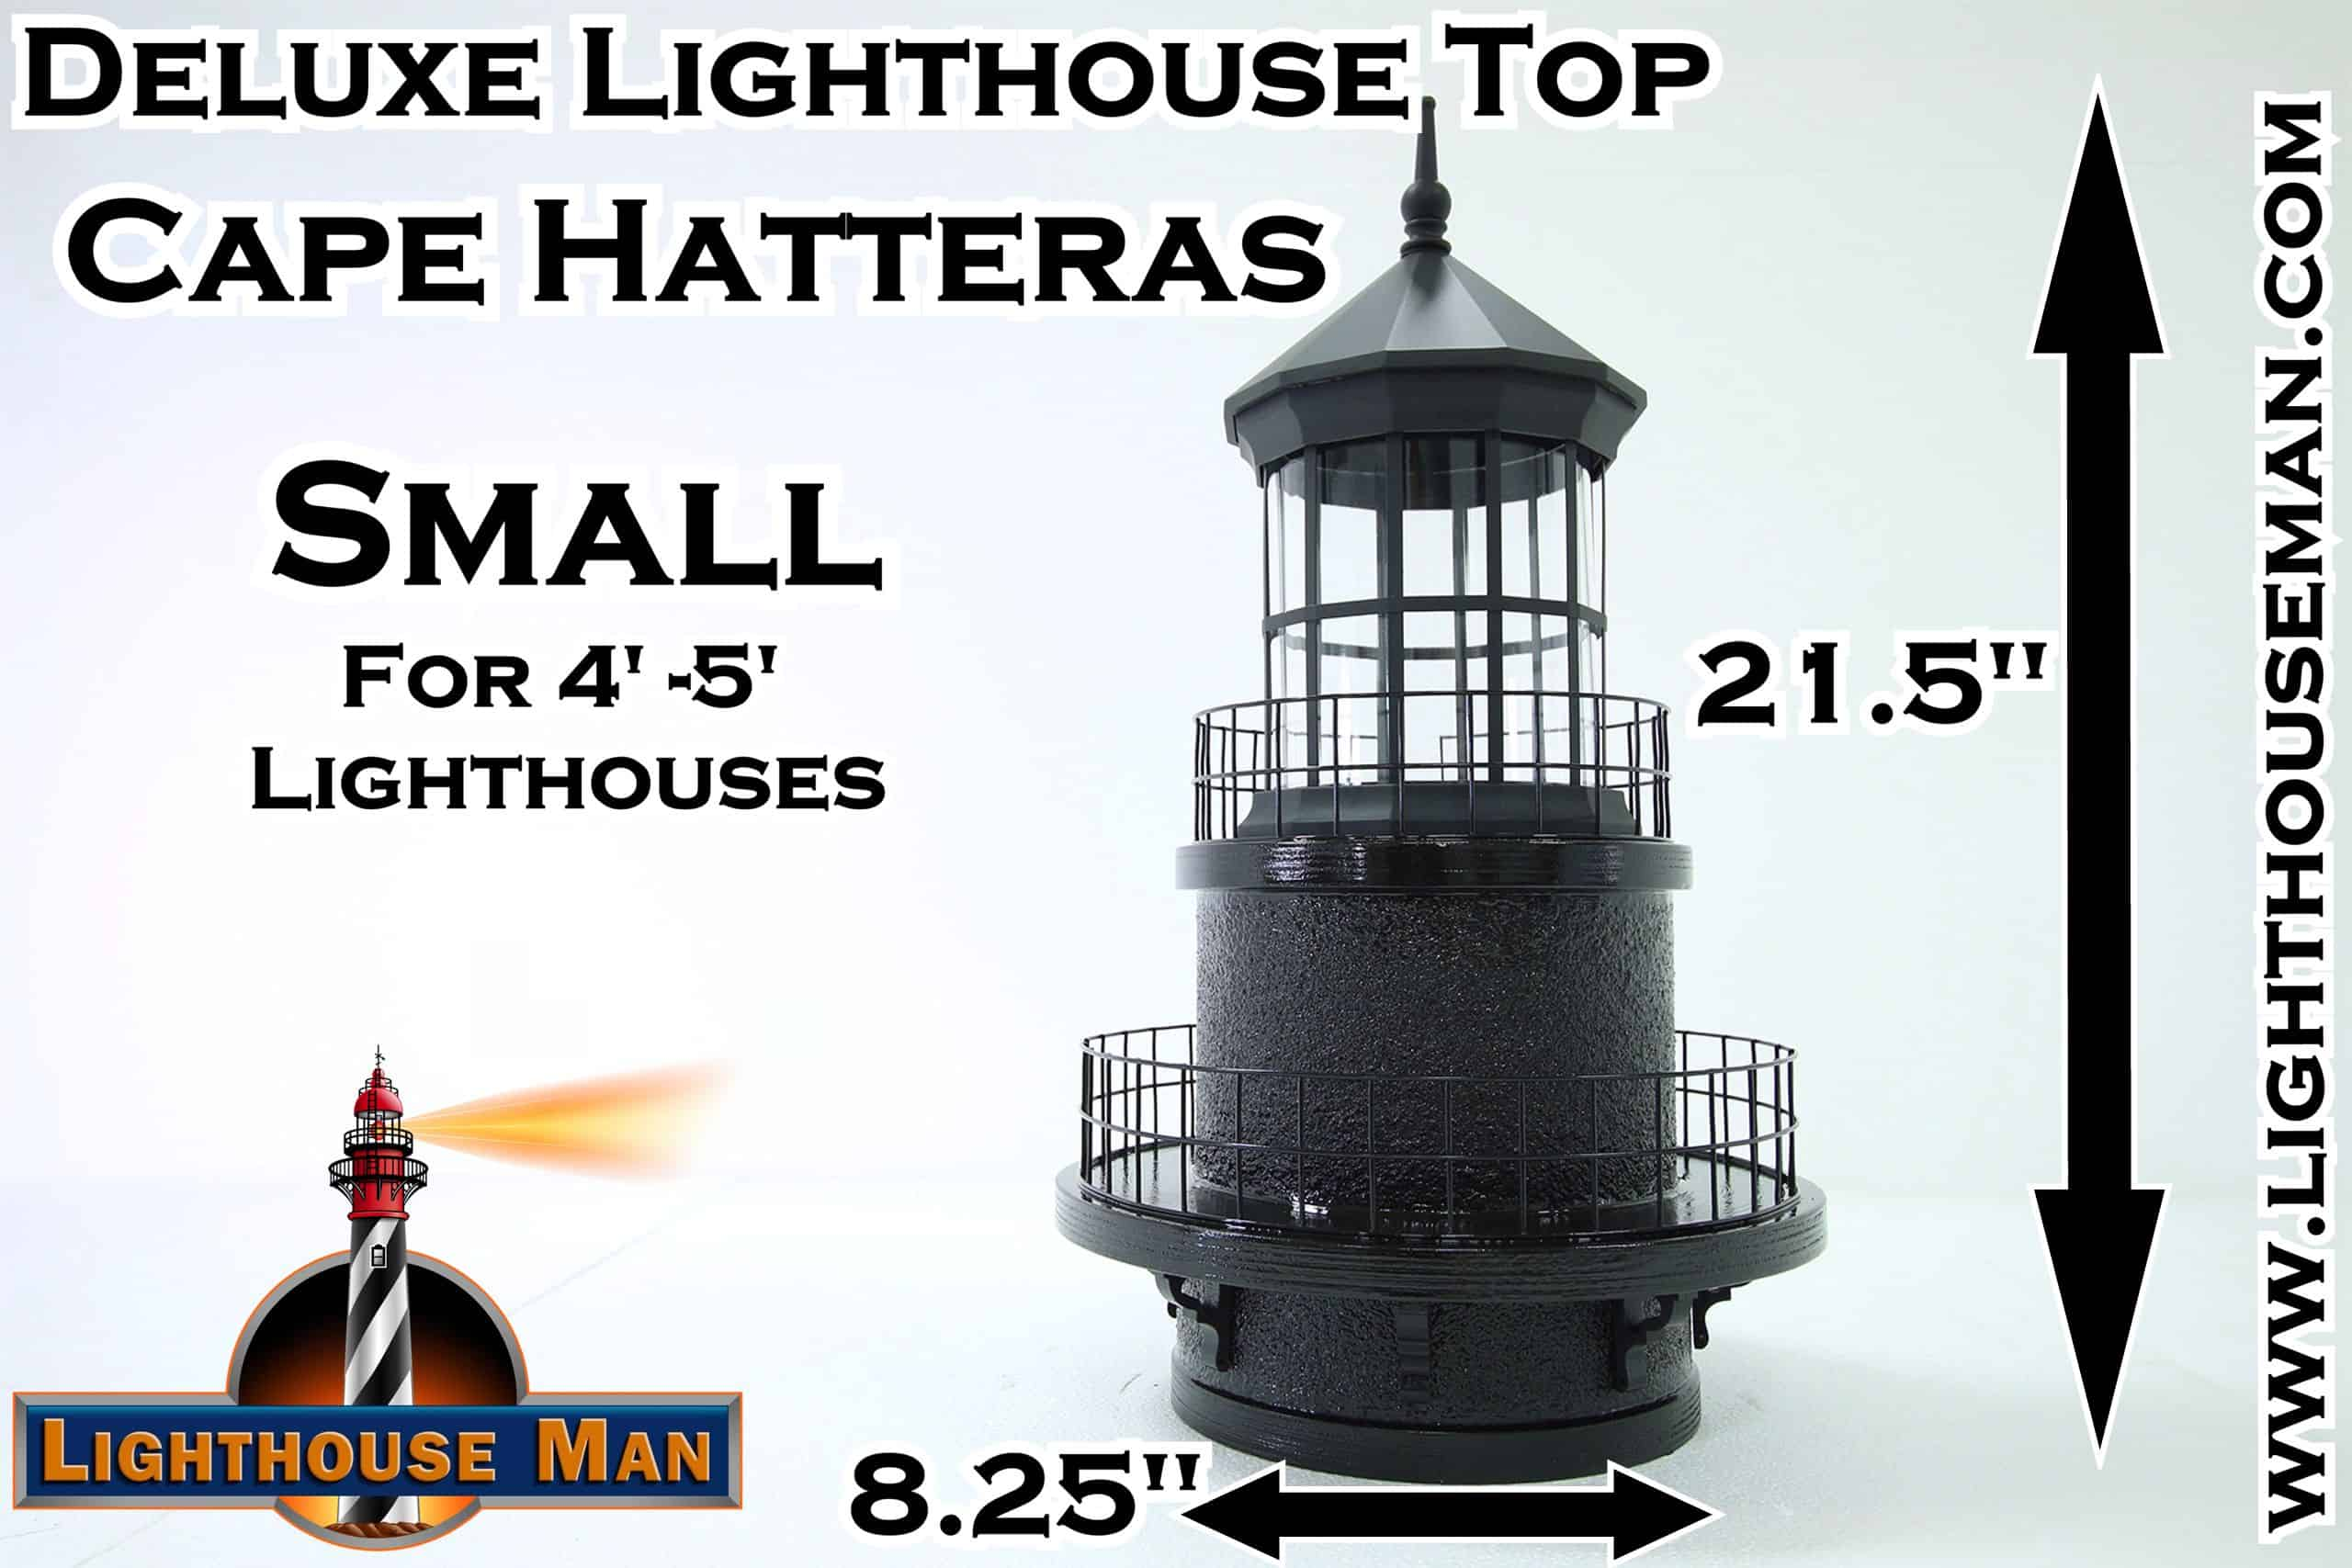 Deluxe Small Cape Hatteras Lighthouse Top